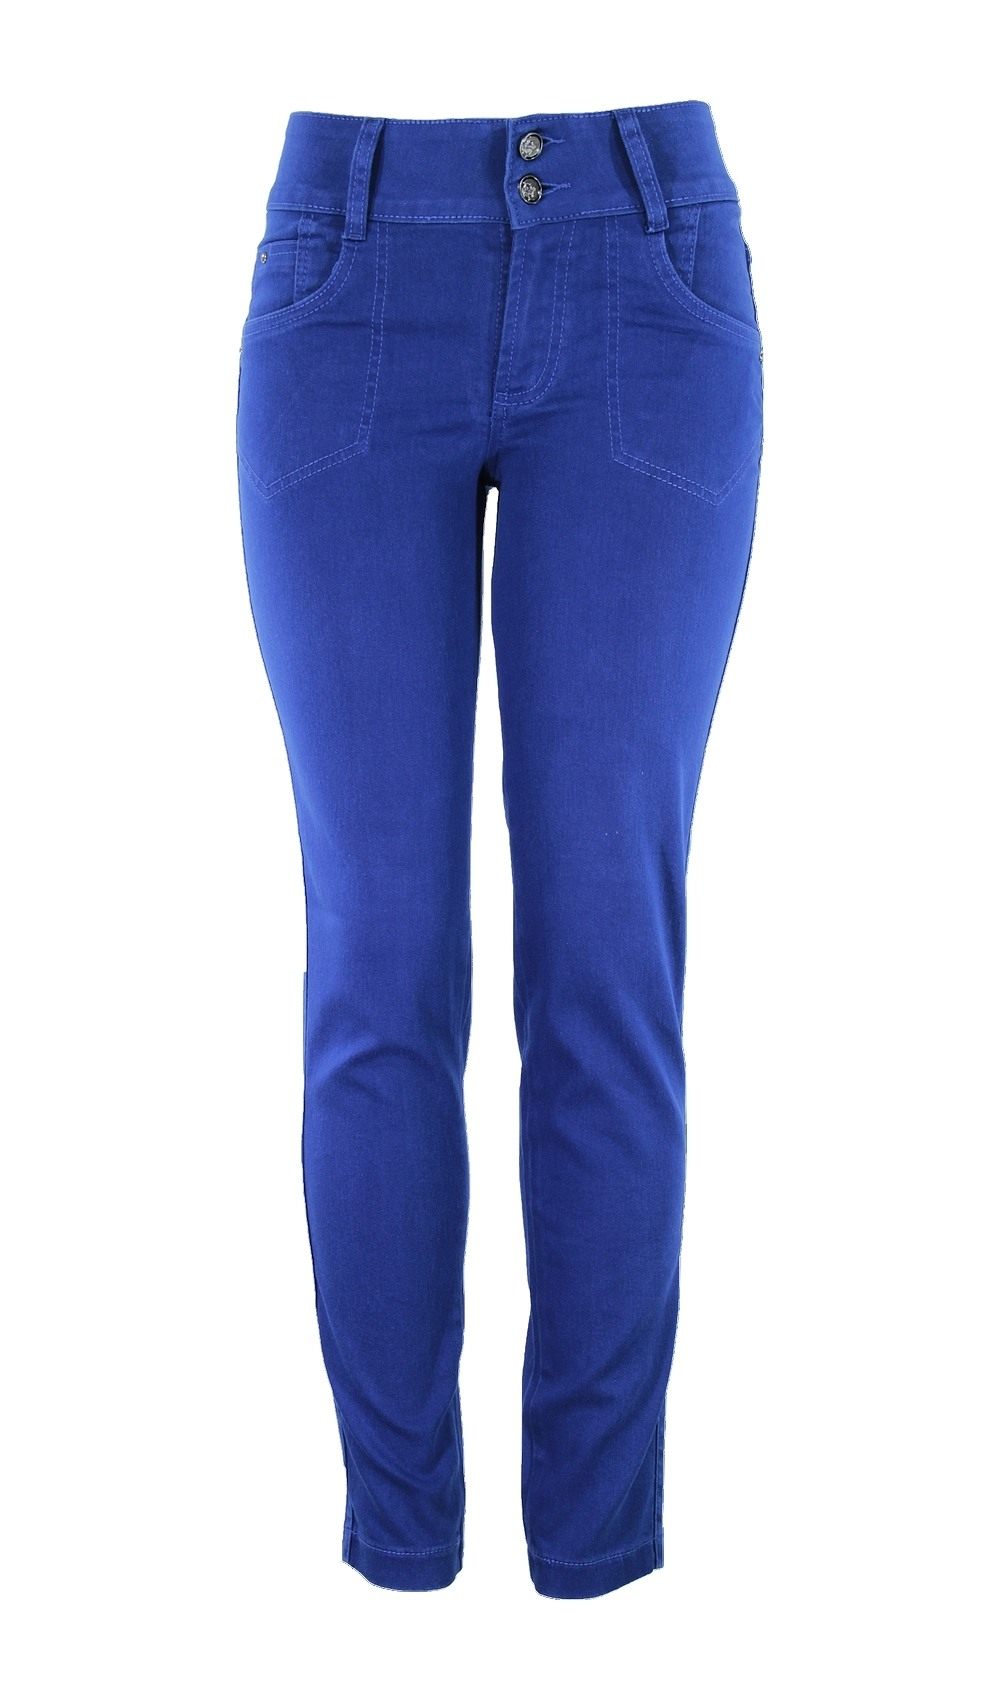 Cigarrete Eruption Jeans Color Julie [52173AZ]